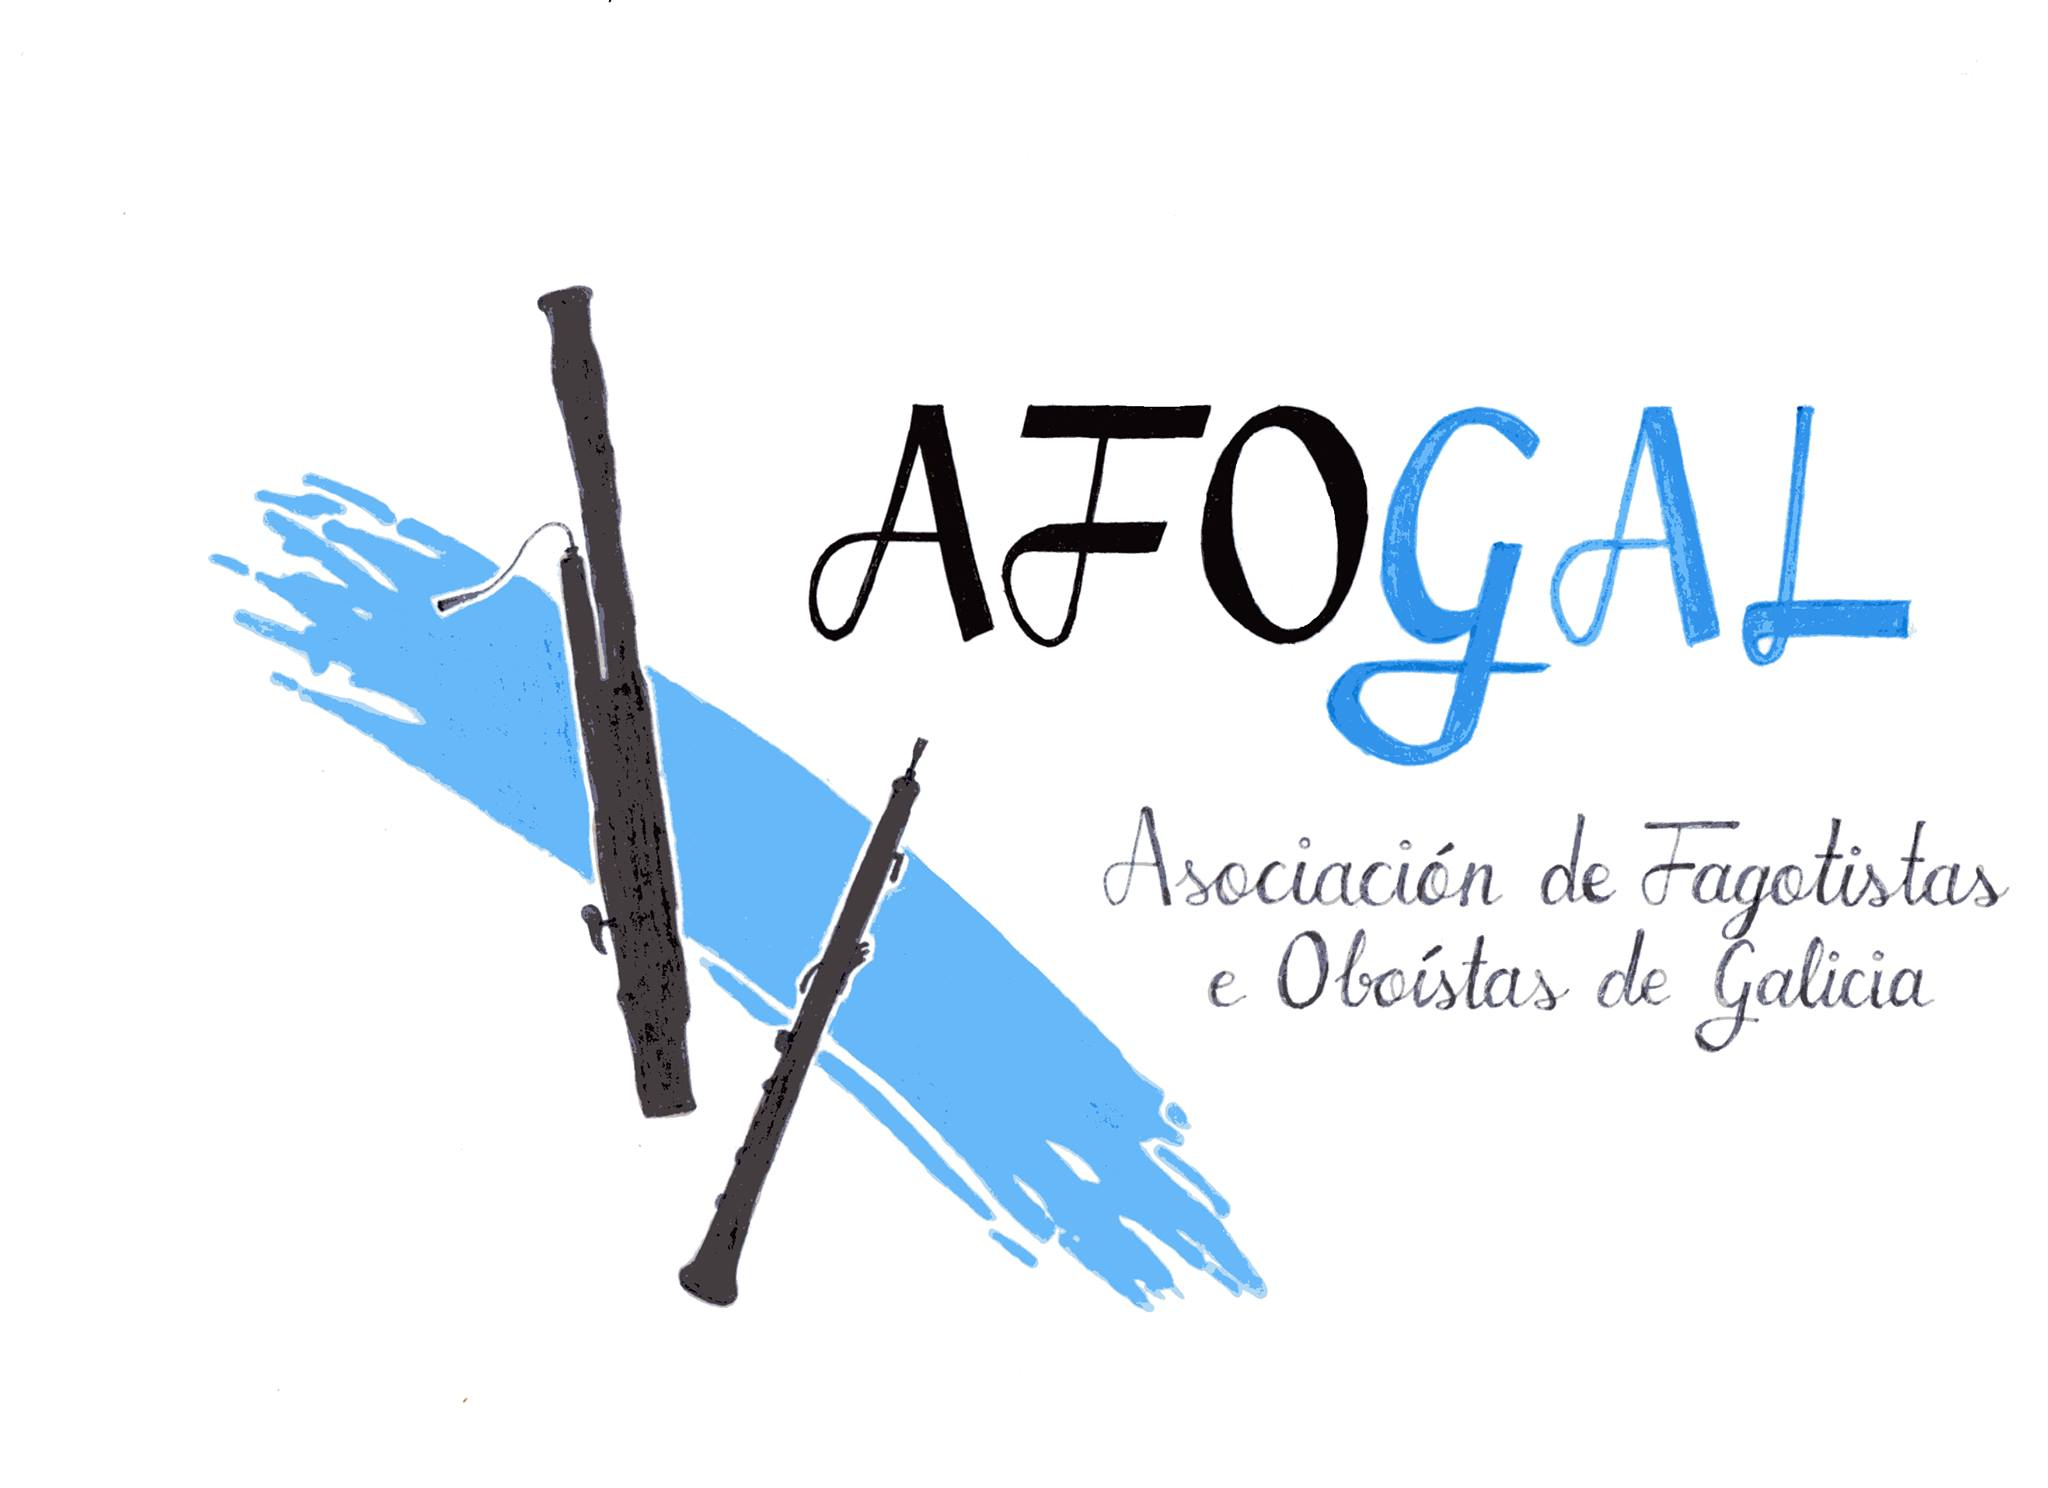 I Congreso AFOGAL